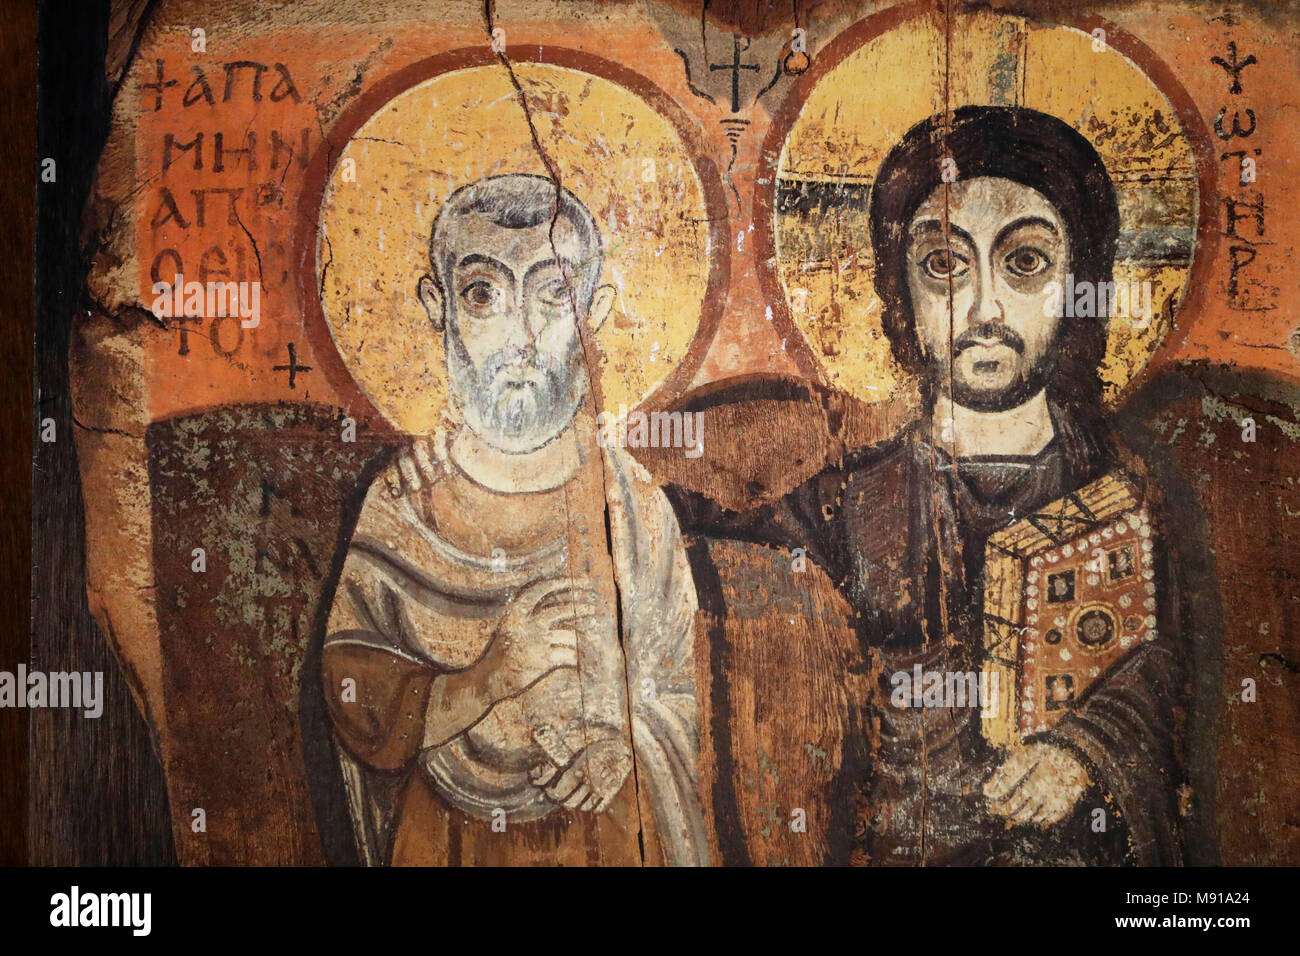 Saint-Pierre-le-Jeune Protestant Church. Jesus and Menas in a sixth-century icon from Bawit in Middle Egypt. Strasbourg. France. - Stock Image